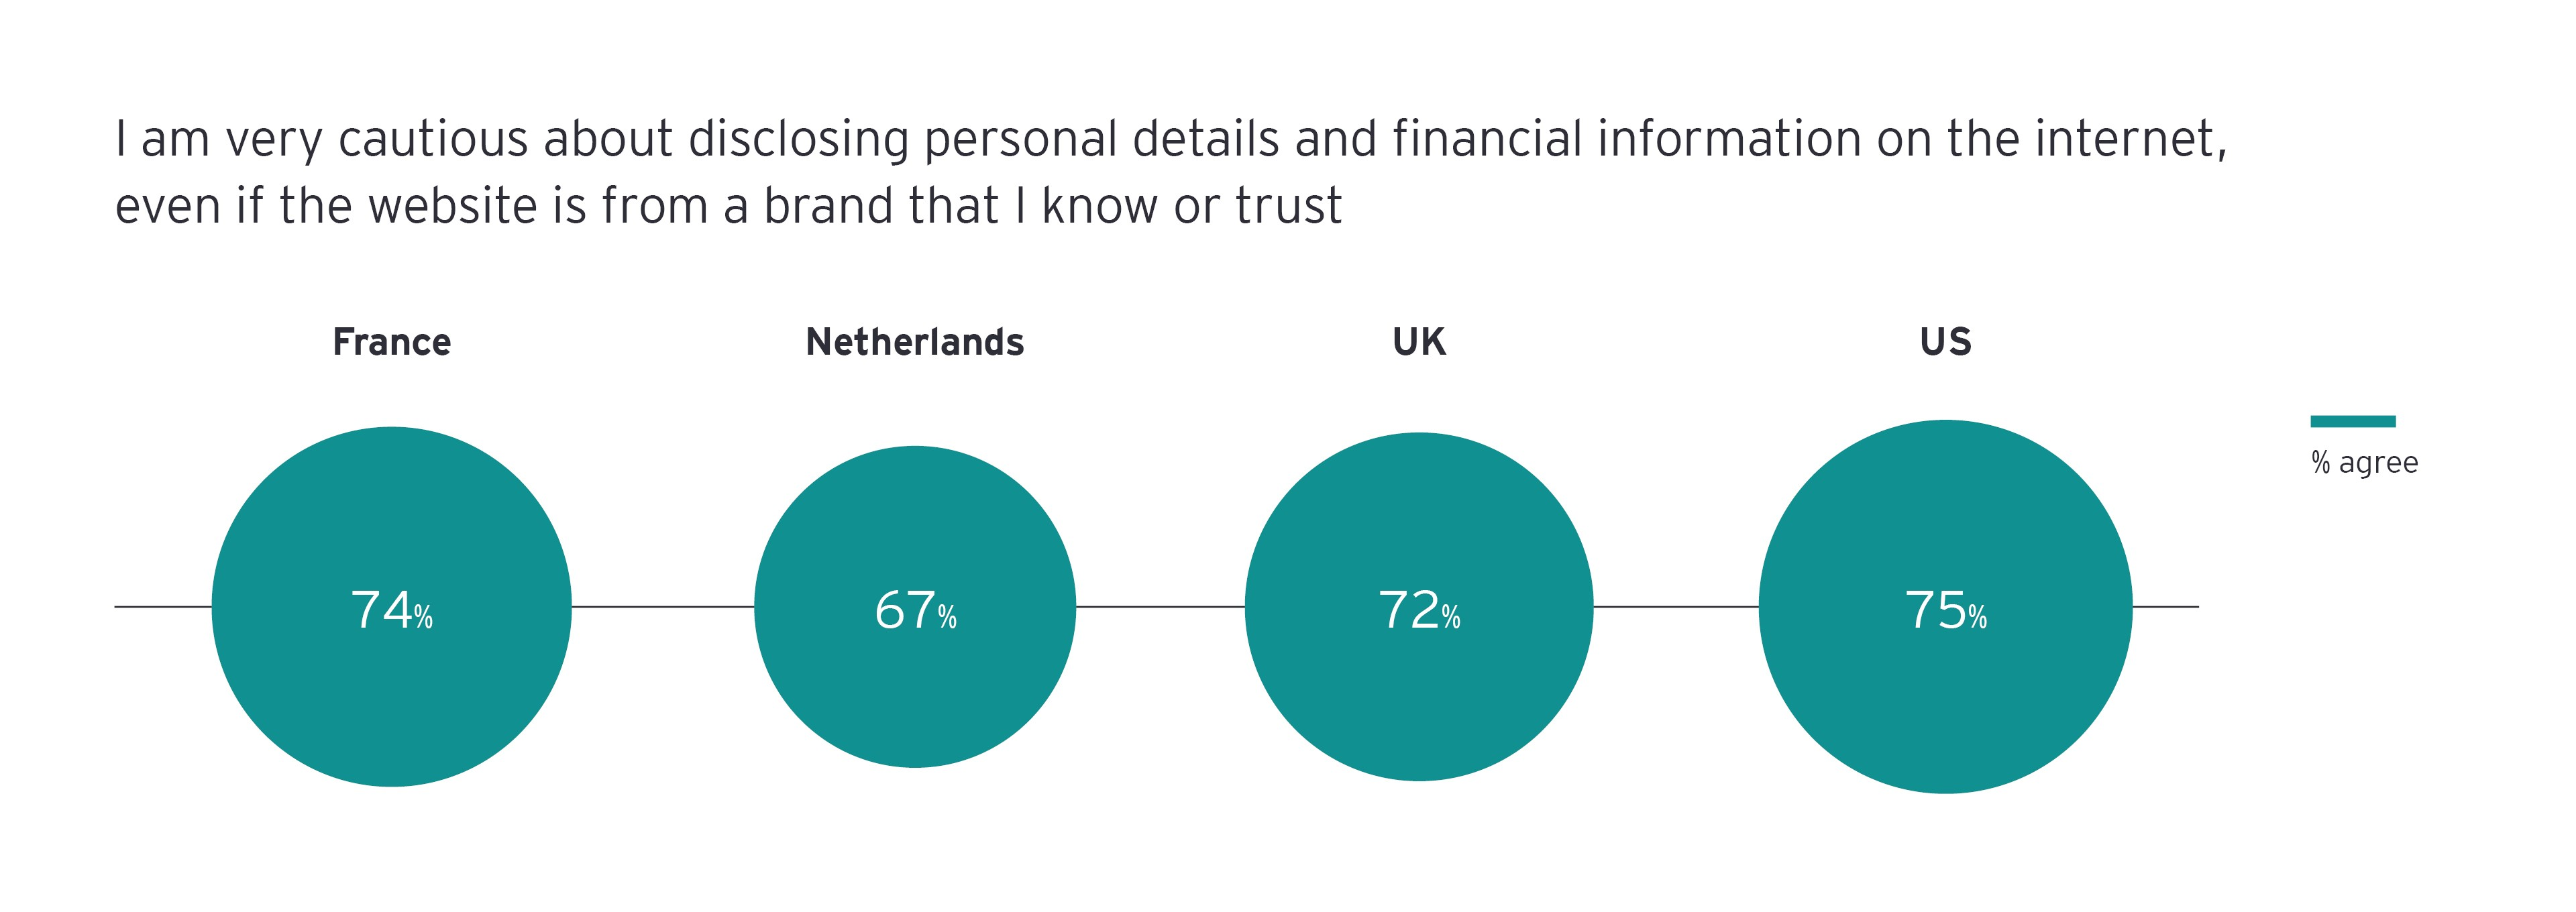 Consumers in all markets are skeptical about disclosing their personal data, even to trusted websites infograph